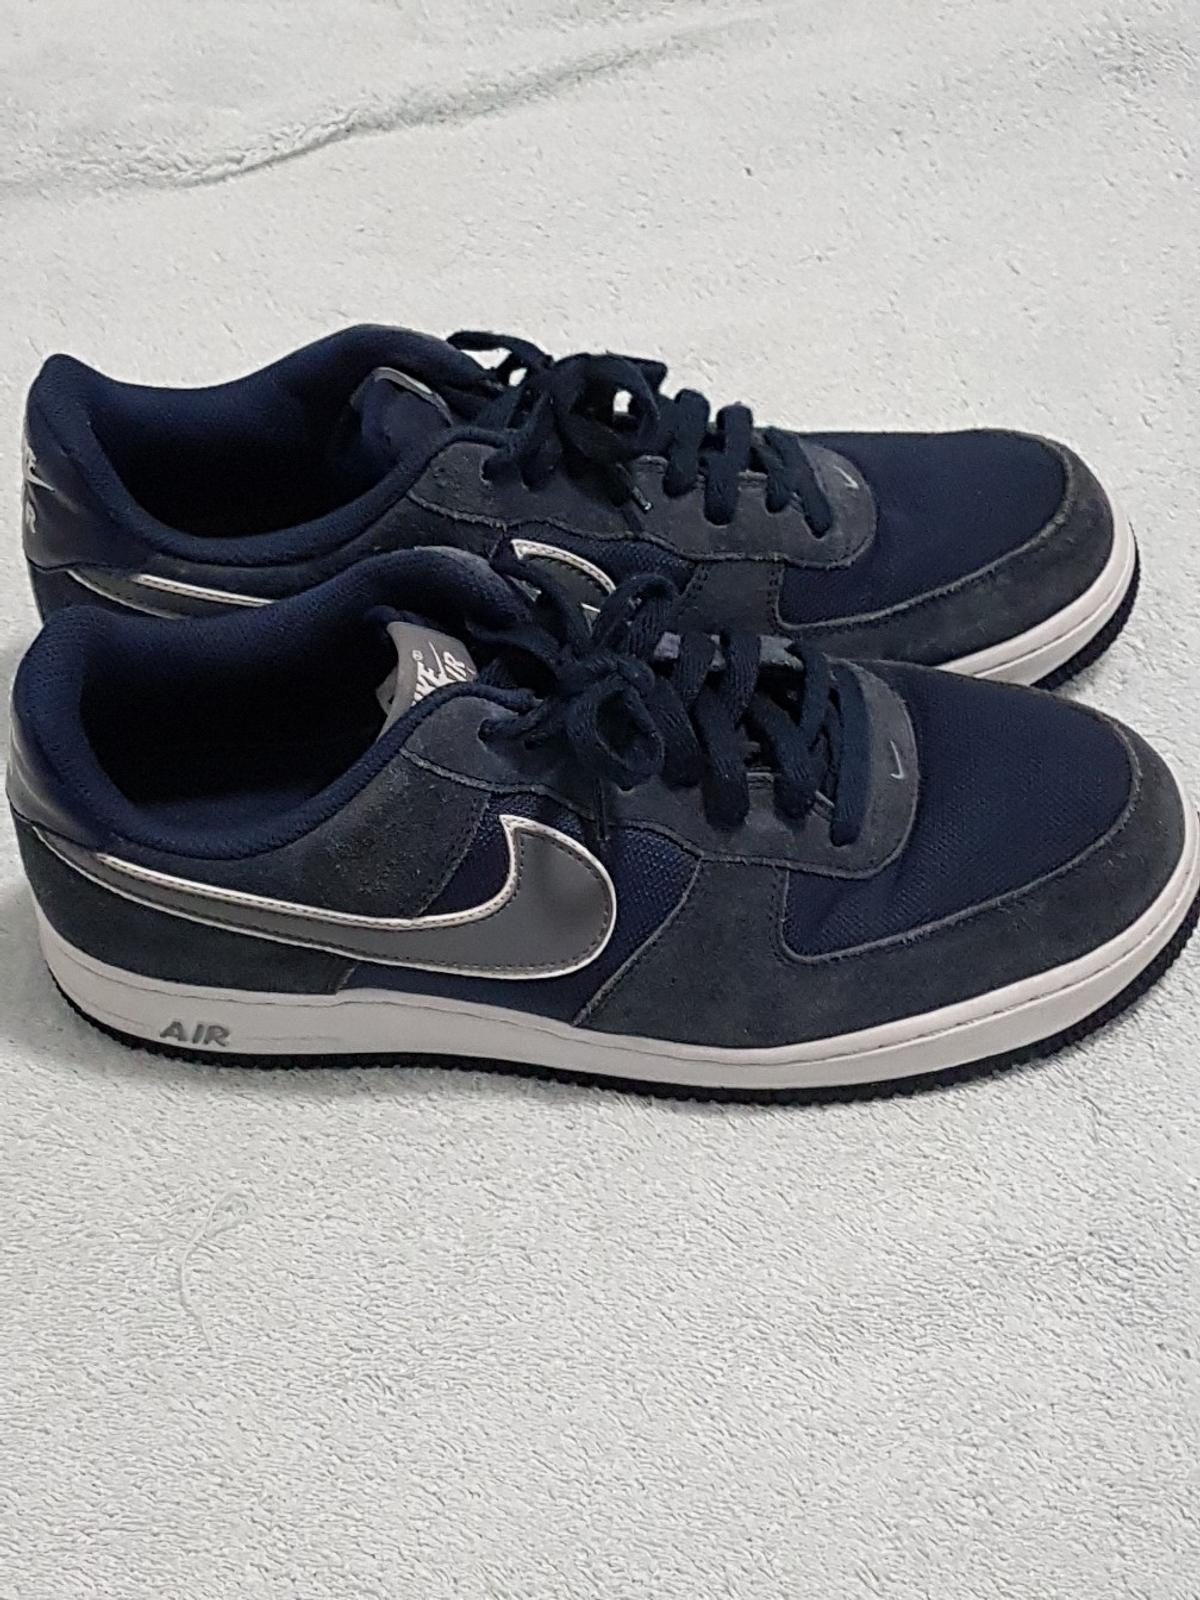 1 Size Air Force Nike Trainers 10 Men's OkuXTwPZi